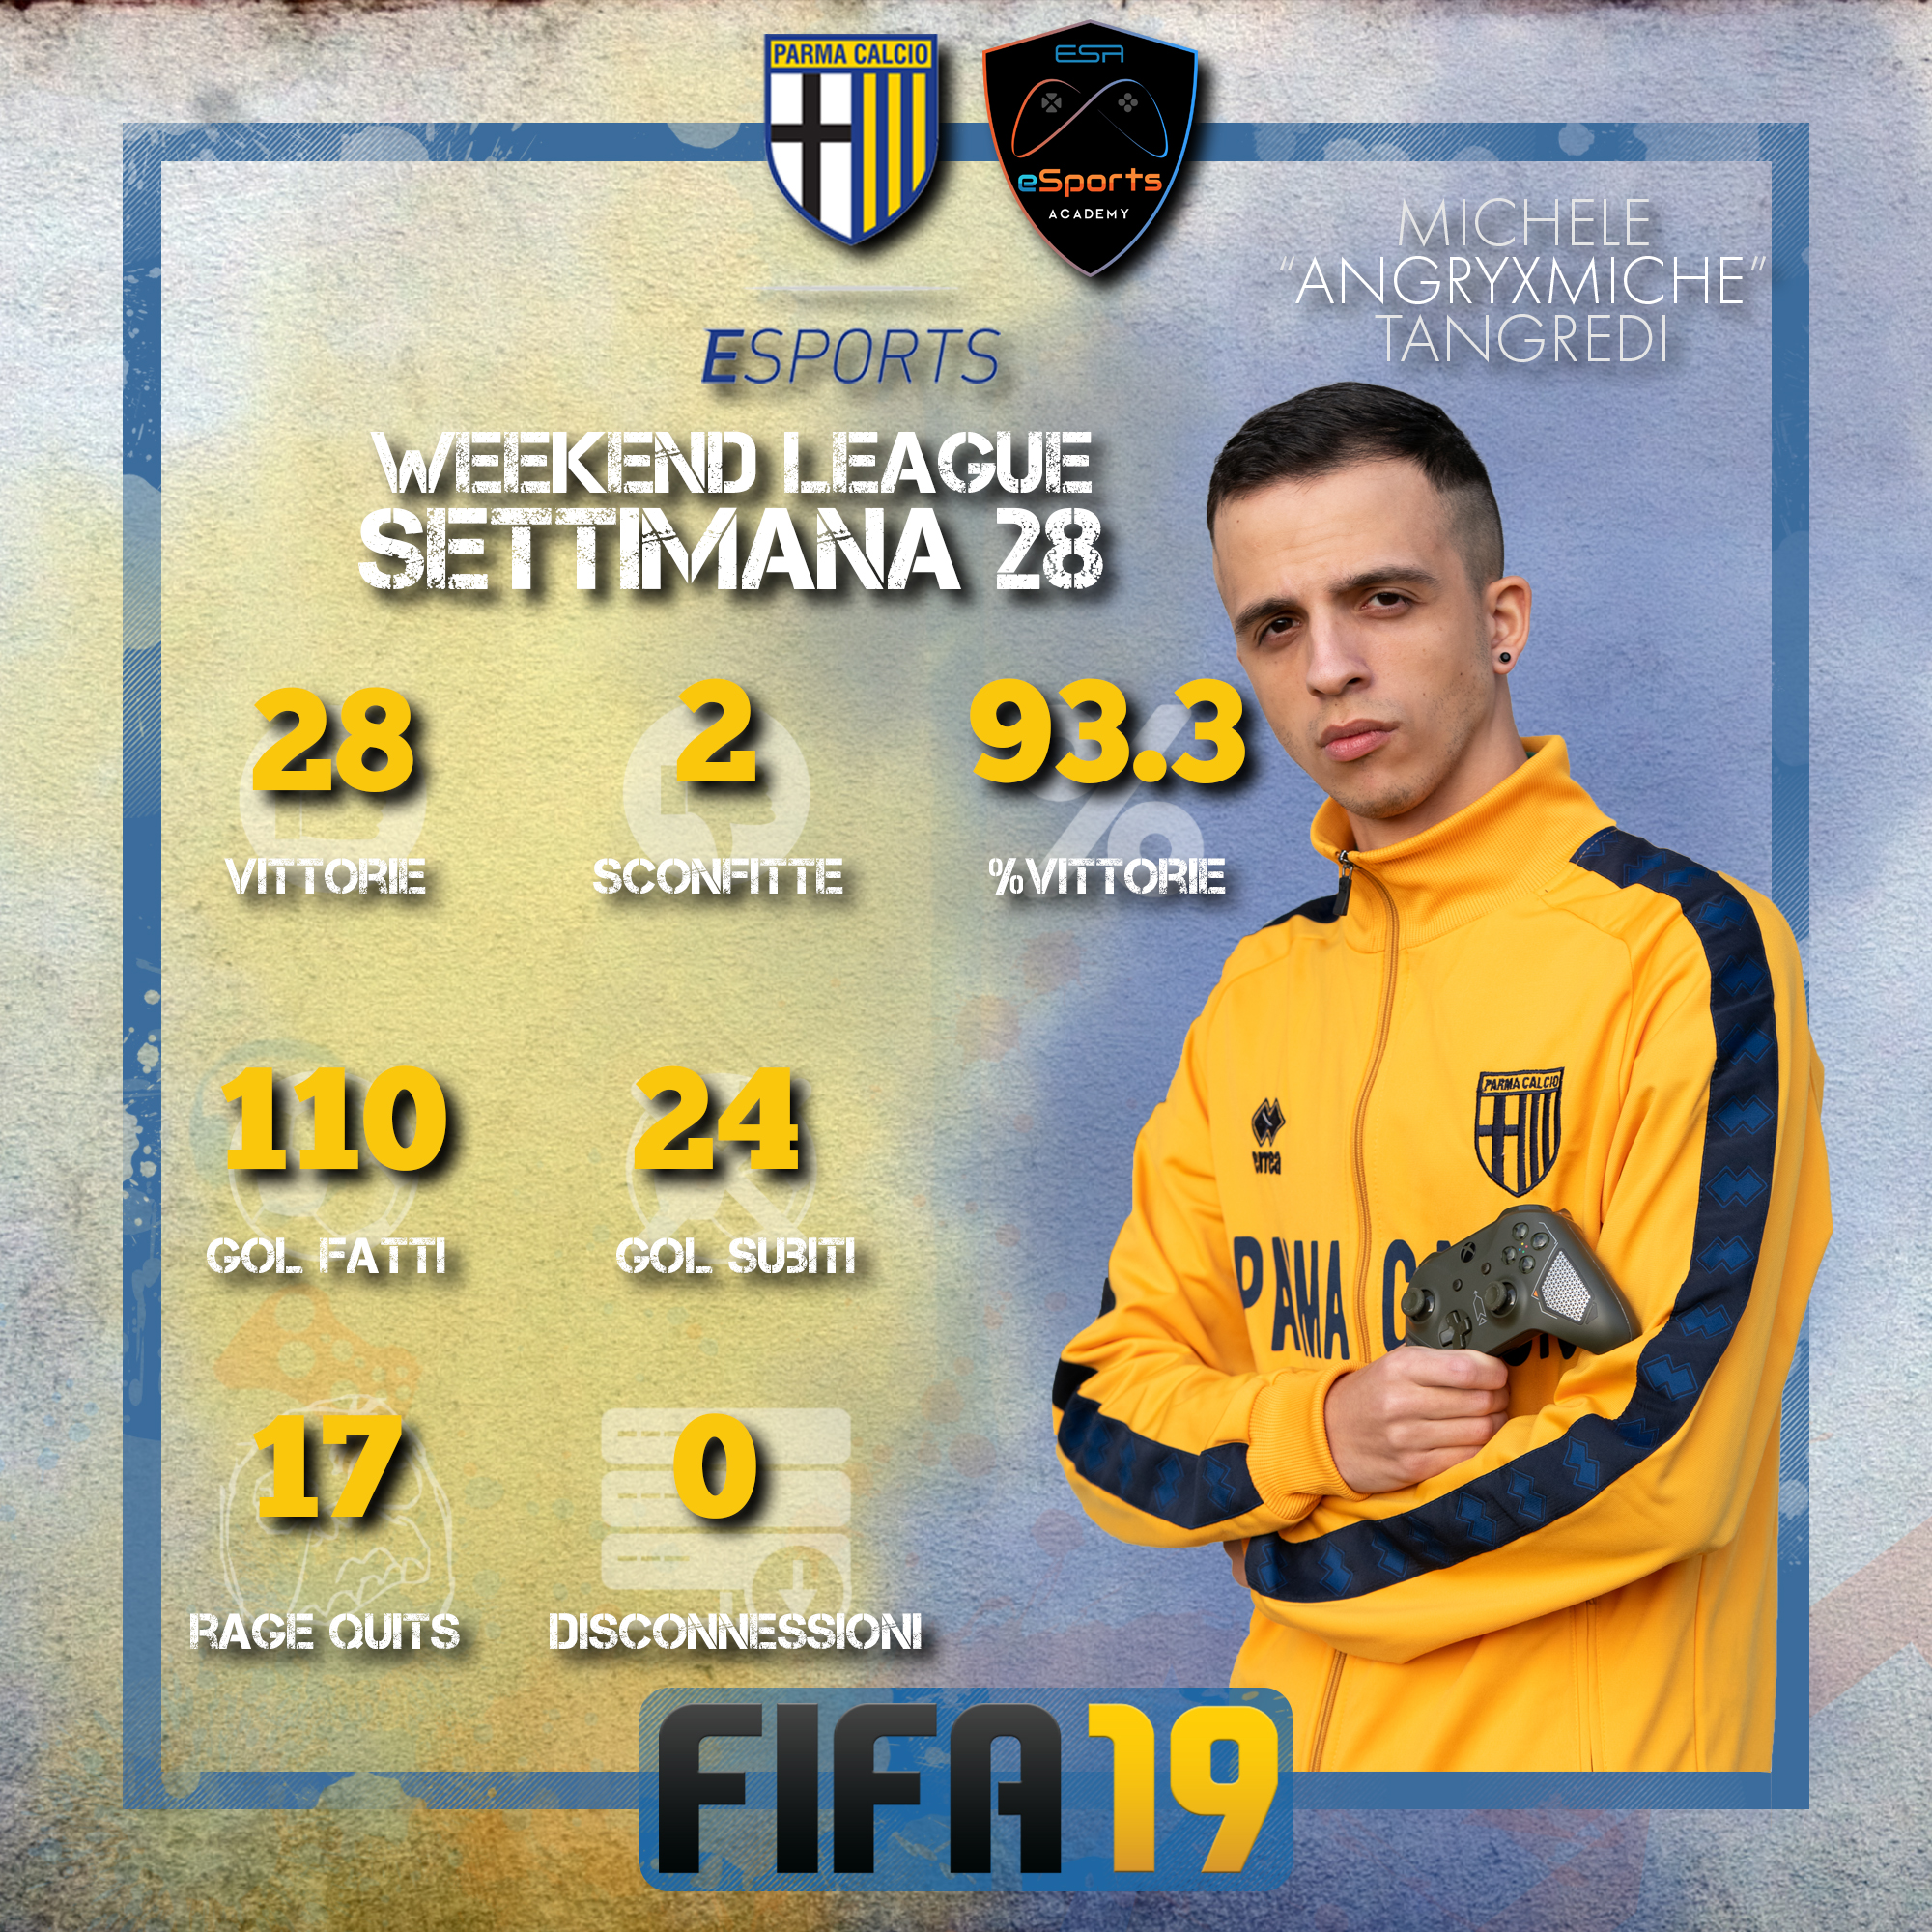 Fifa19_Weekend League_Week28_AngryXMiche.jpg